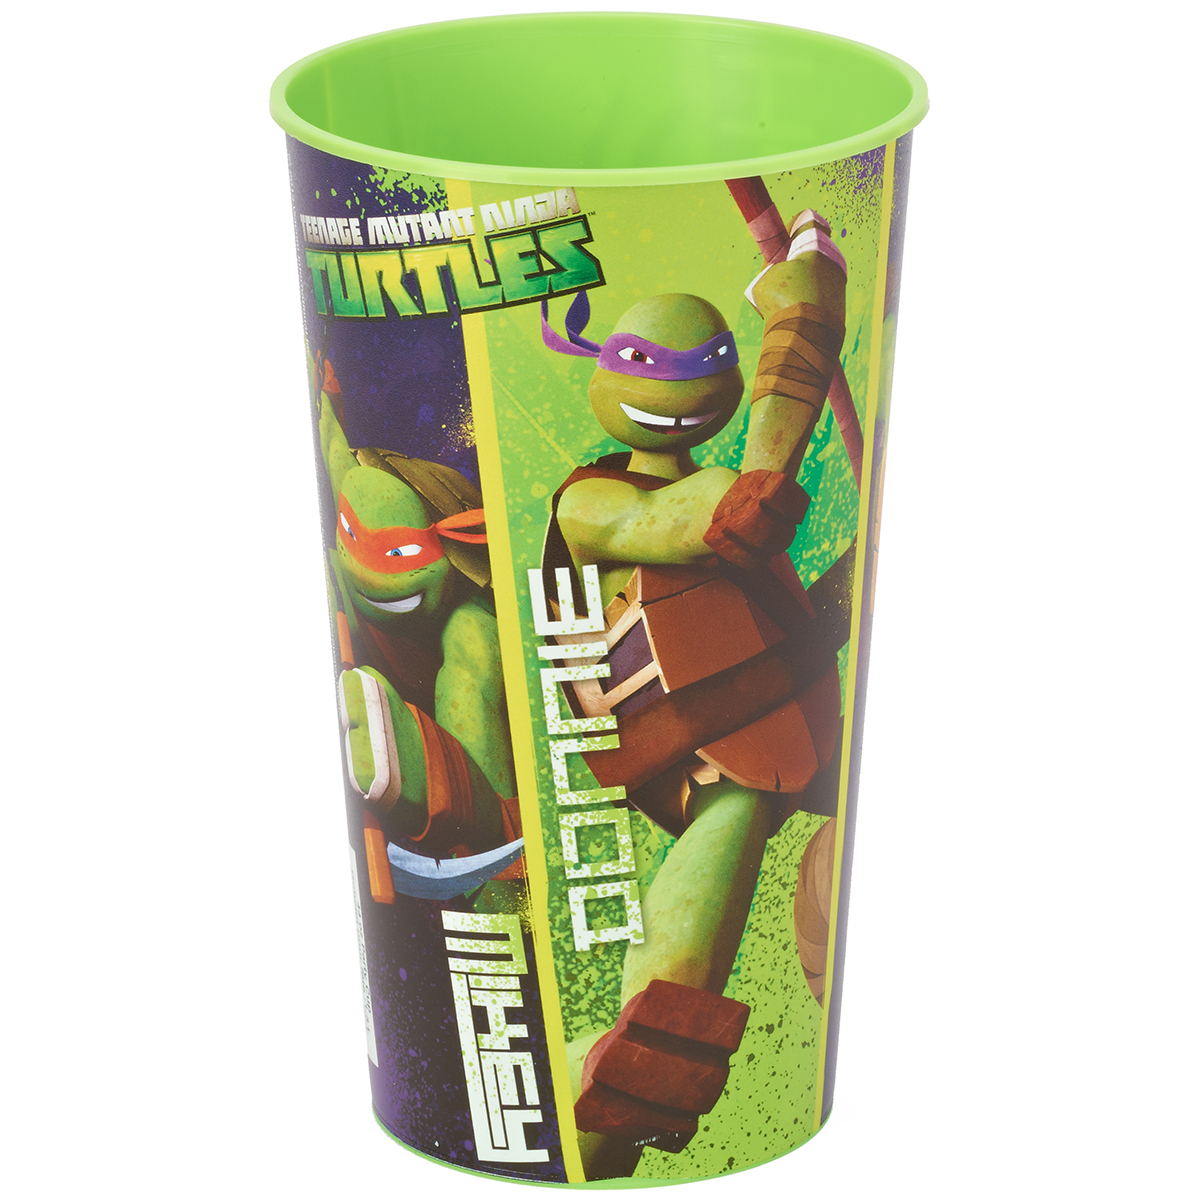 Teenage Mutant Ninja Turtles 44 oz. Plastic Party Cup, Party Supplies